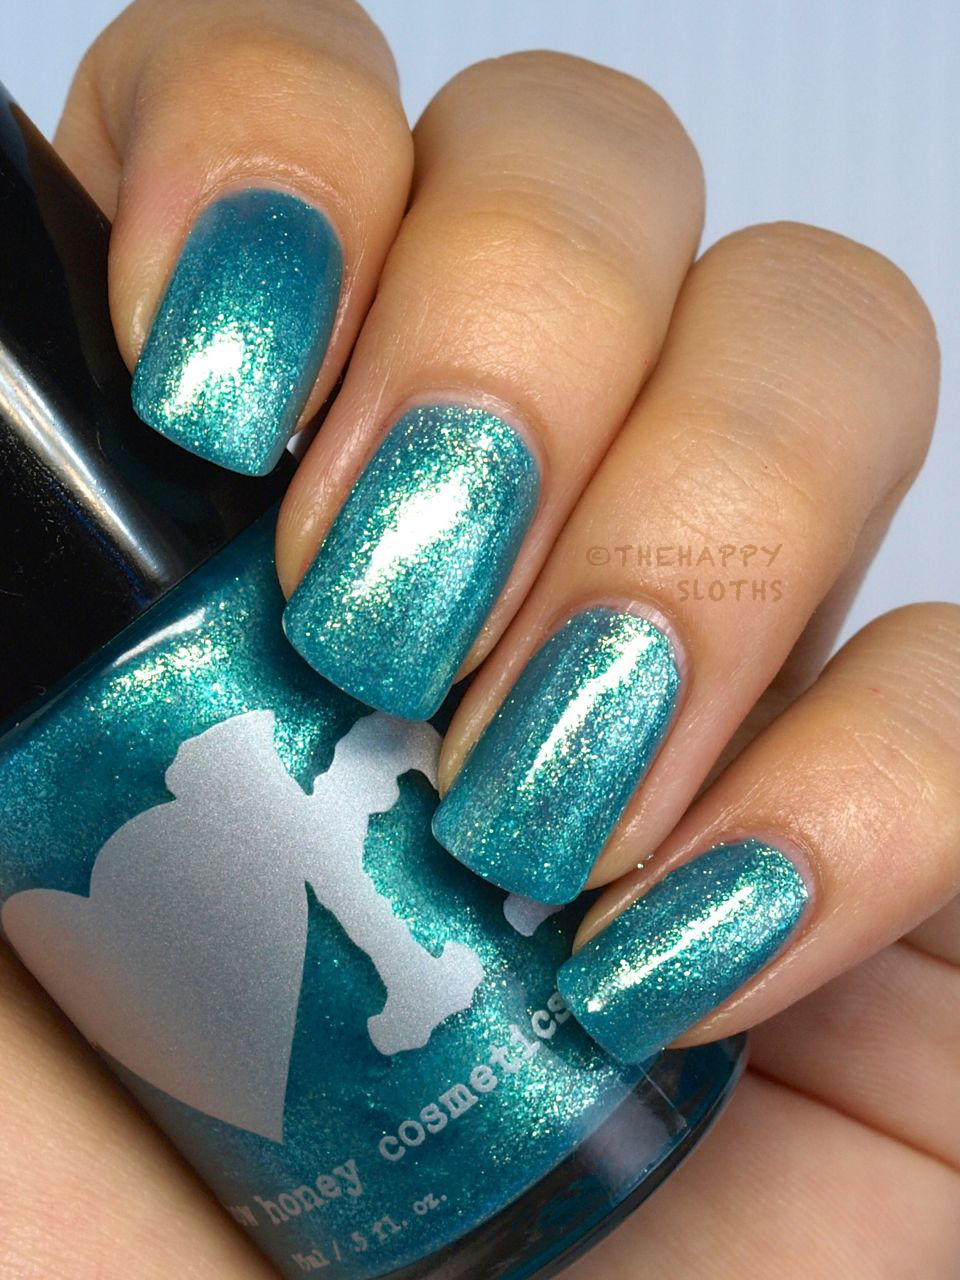 Rainbow Honey Nail Polish Summer Mixtape Collection in Waves Review and Swatches